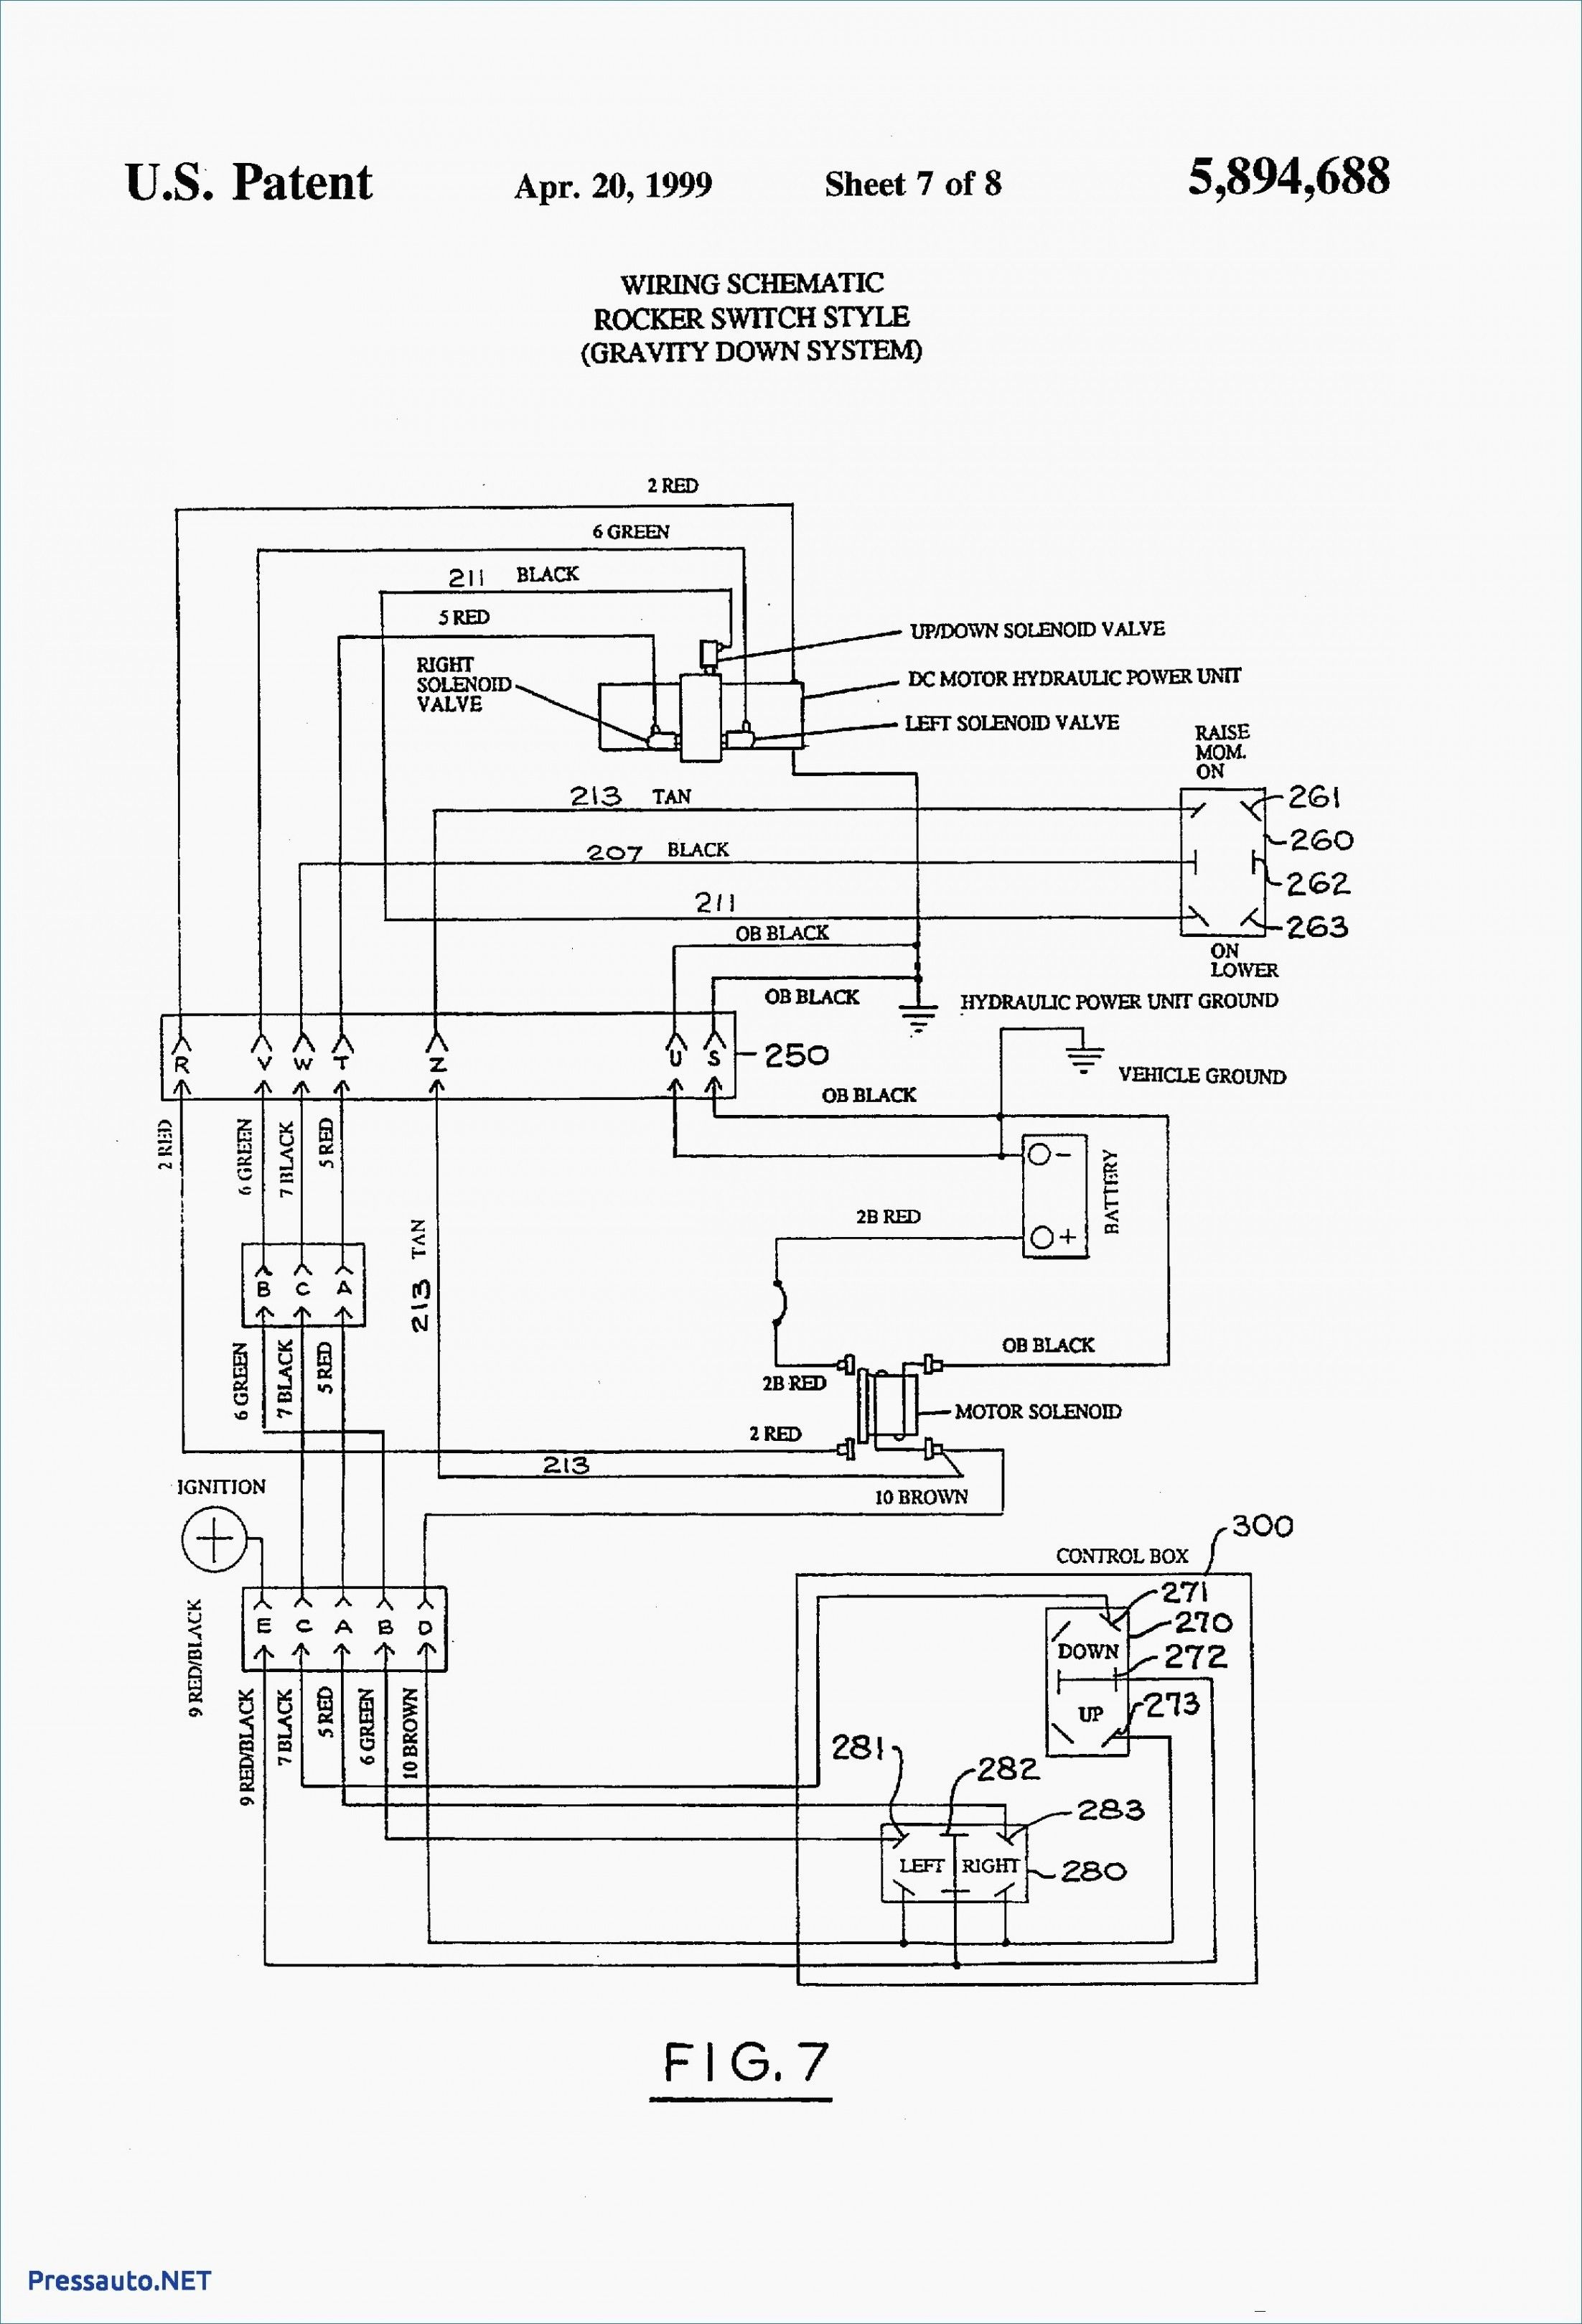 Western Unimount Wiring Diagram In 2020 Diagram Wire Westerns